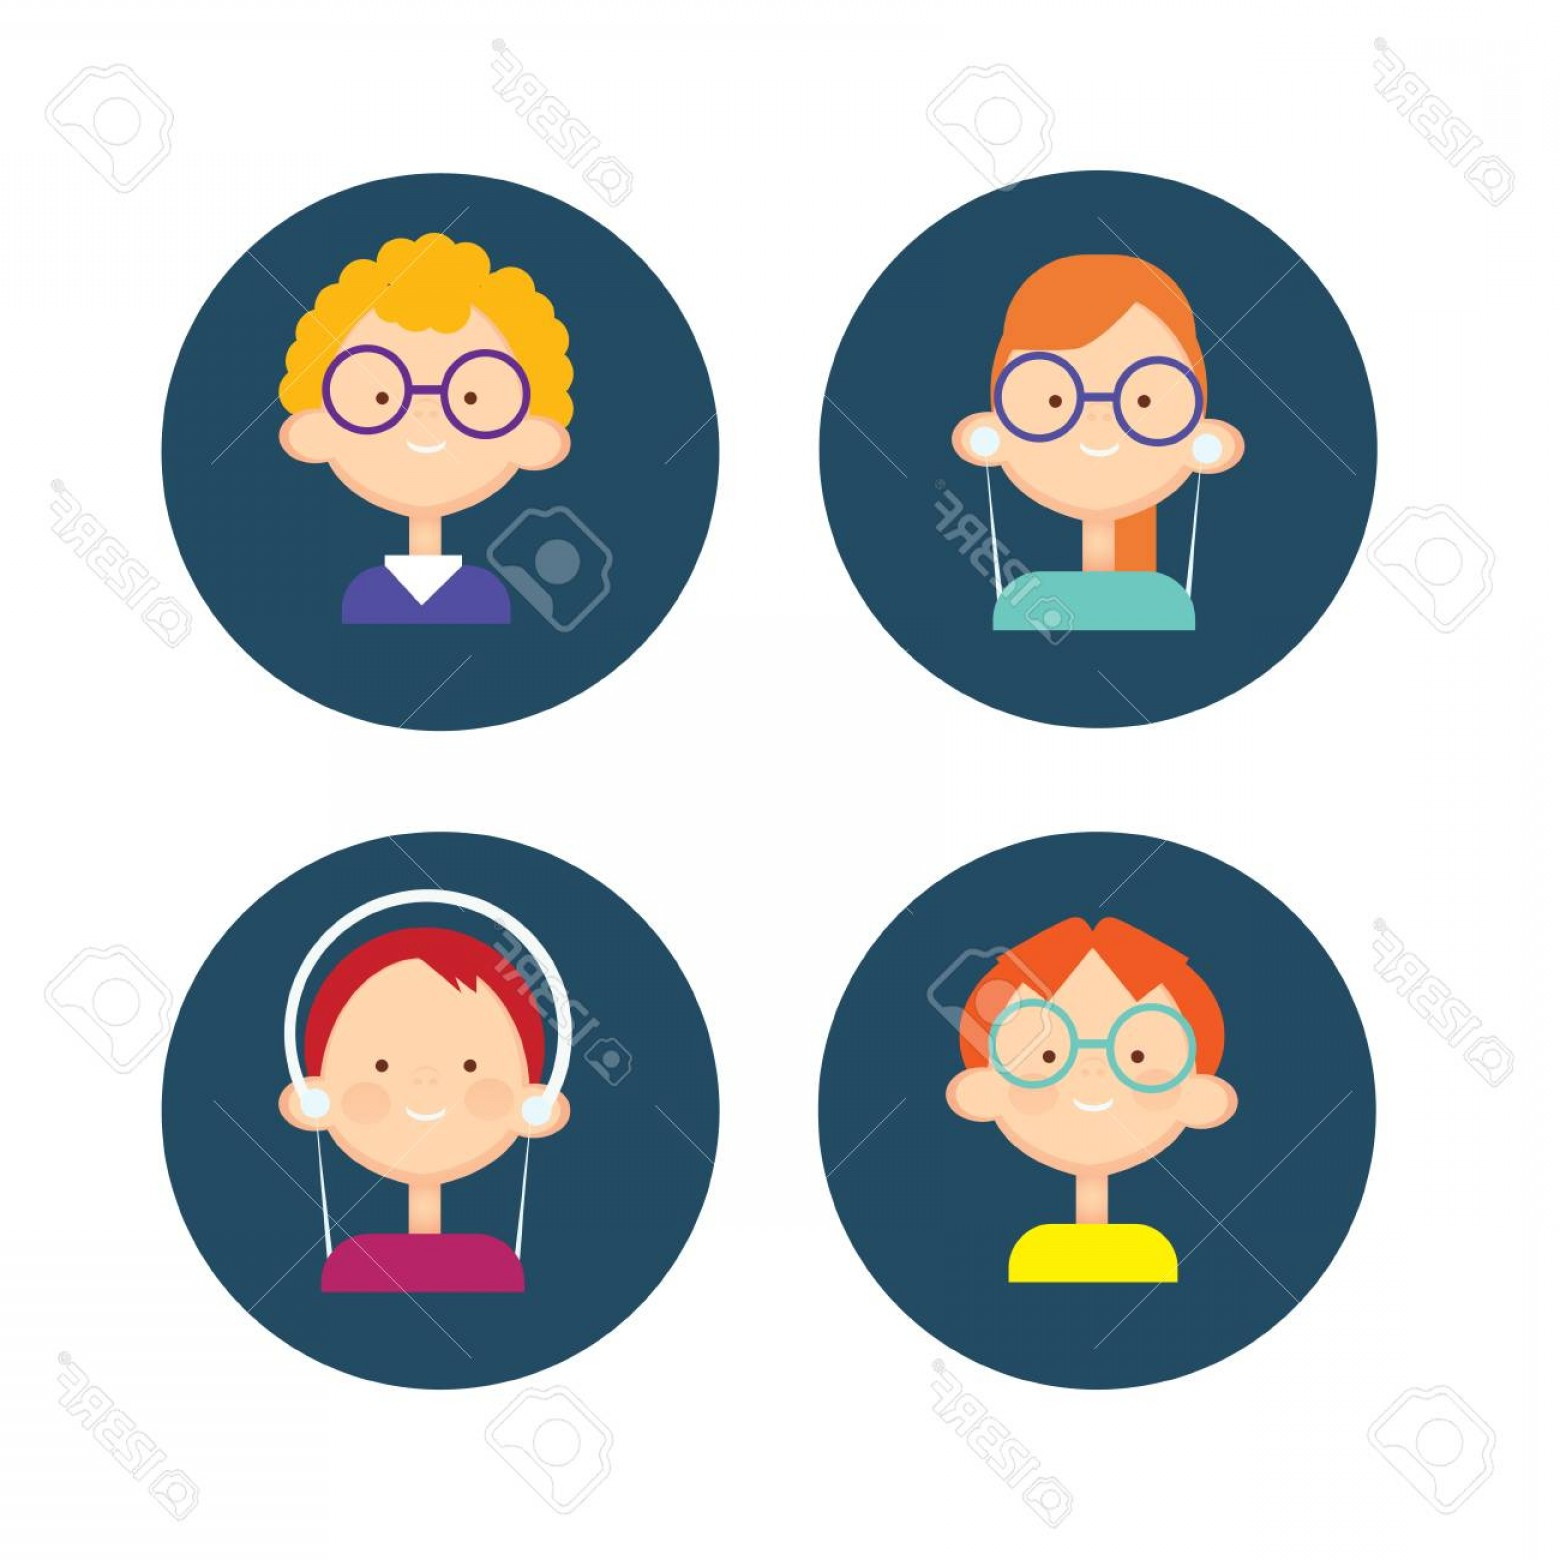 Teenage Icons Vector: Photostock Vector Young People Group Icon Set Teenager Children Avatar Flat Vector Illustration